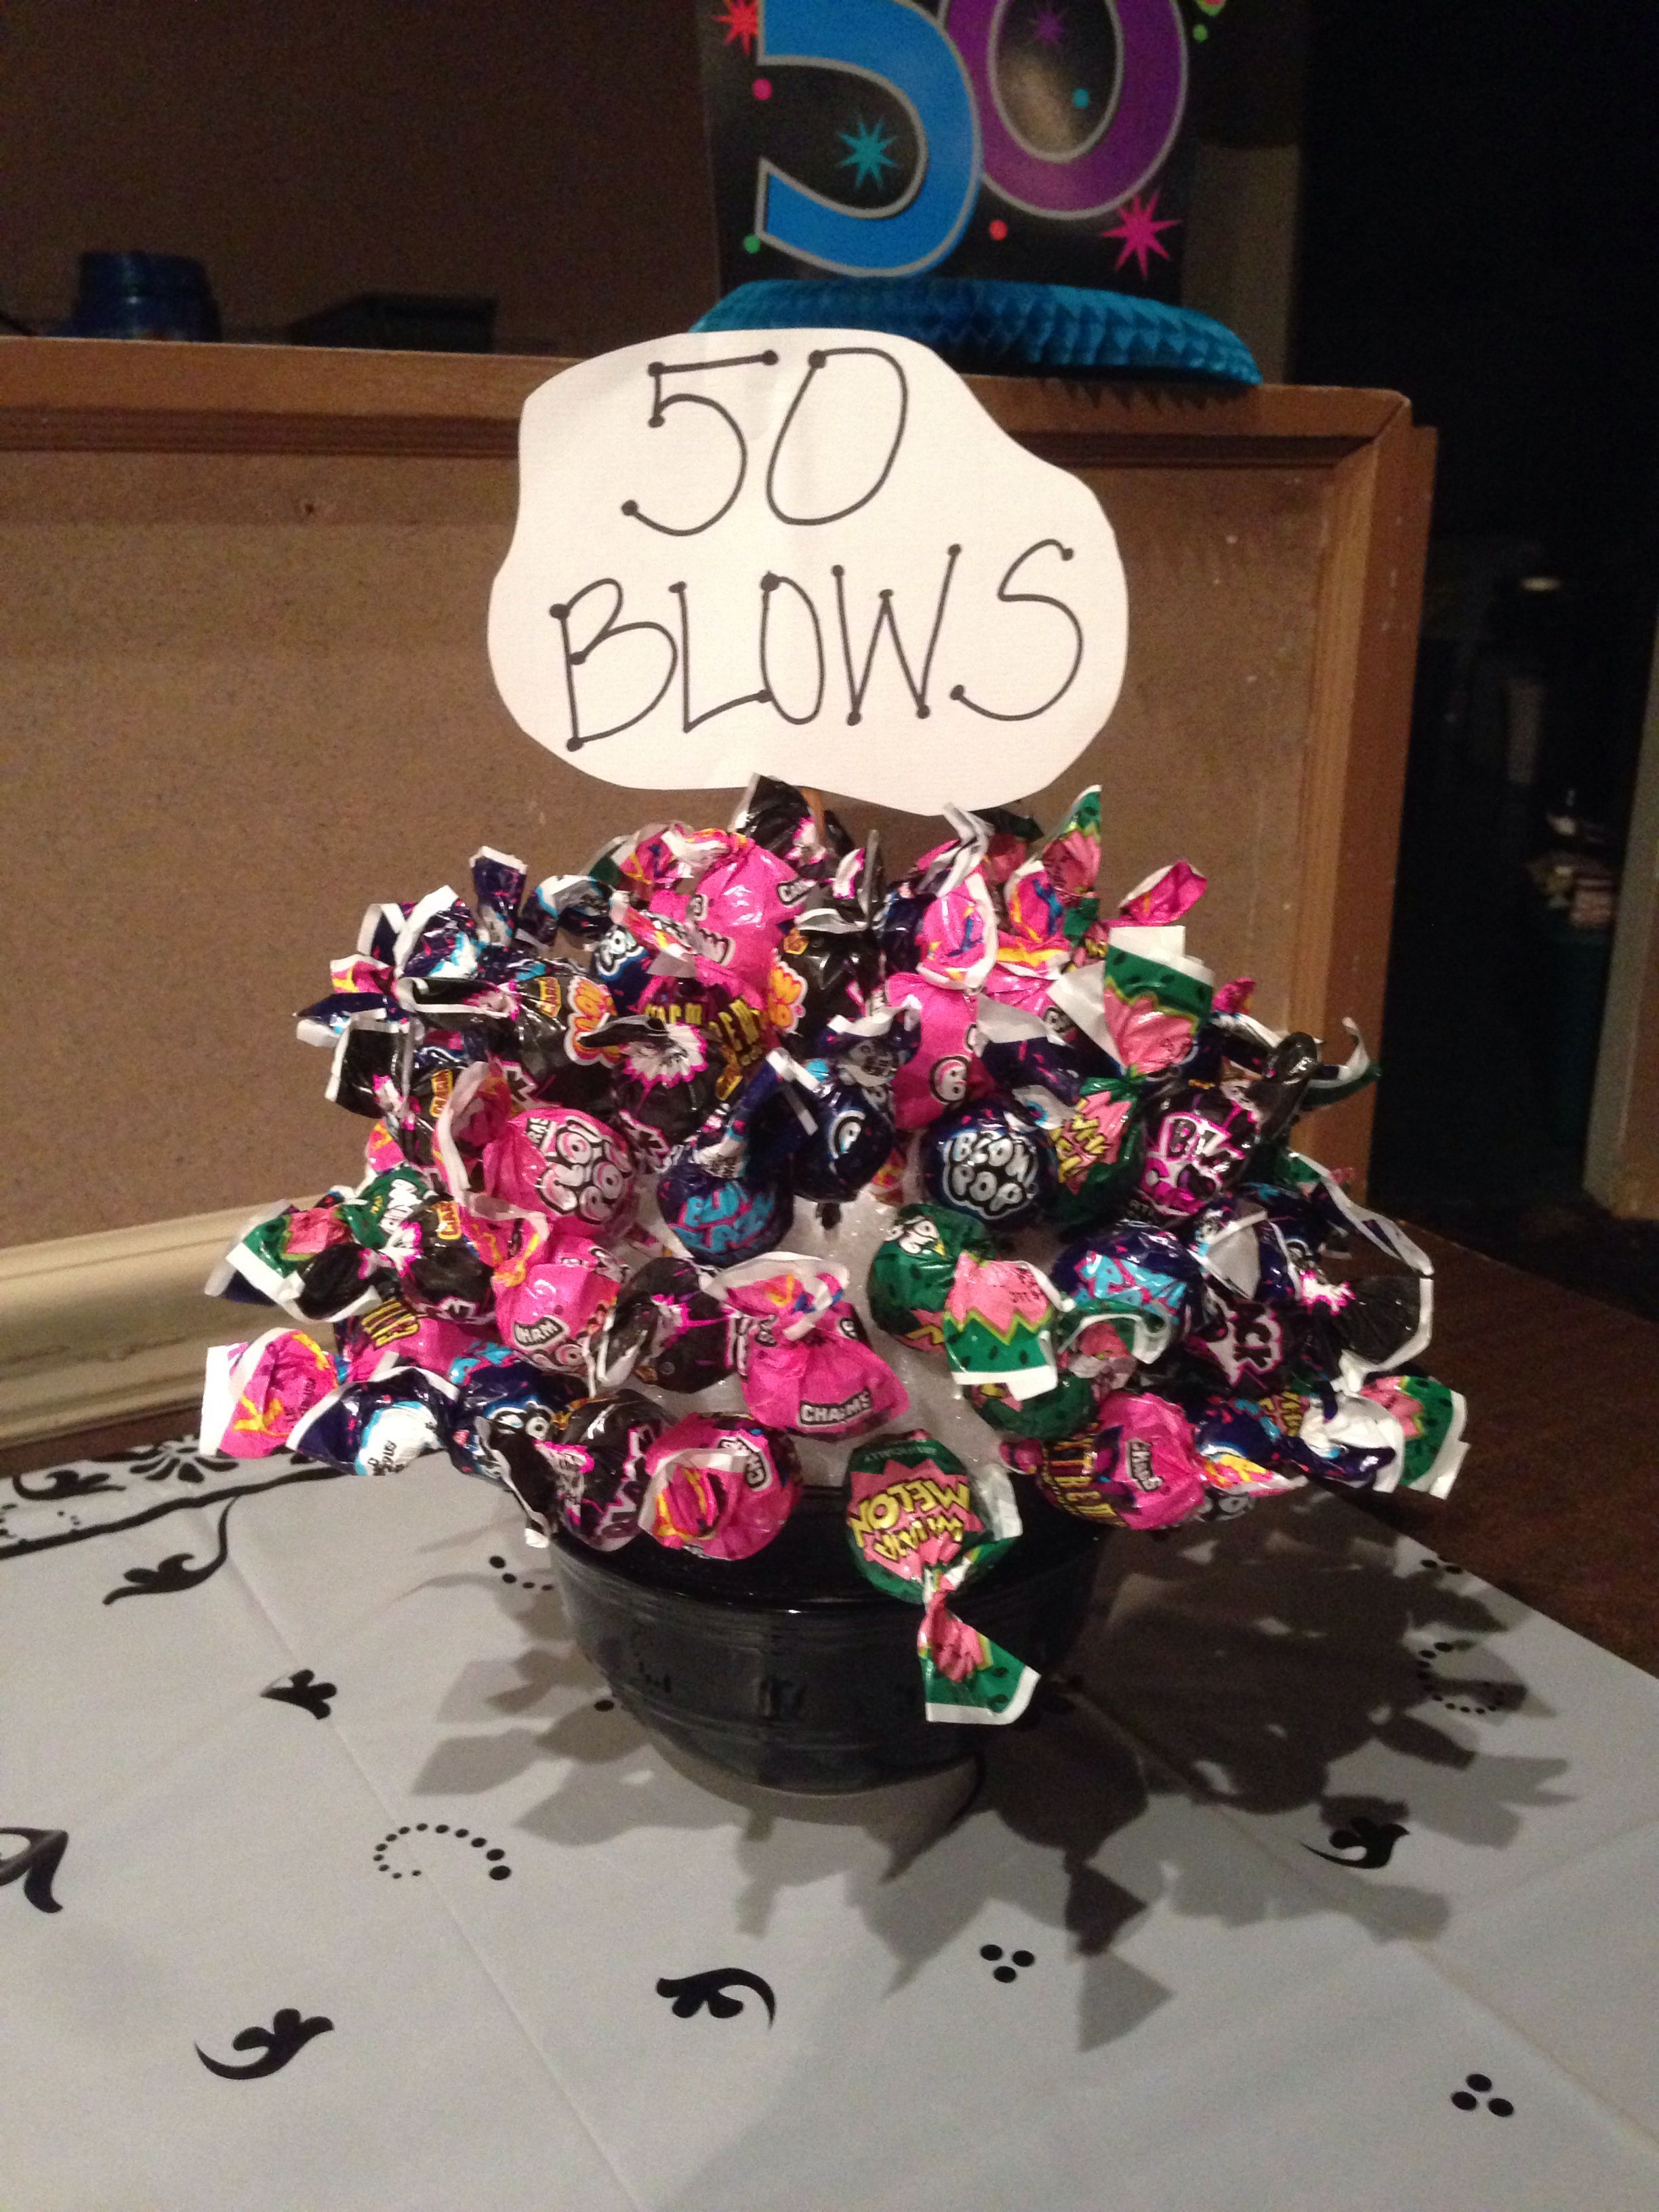 50 Blows Bouquet For A 50th Birthday Party Gift 50th Birthday Party Gifts 50th Birthday Party Birthday Gift Ideas